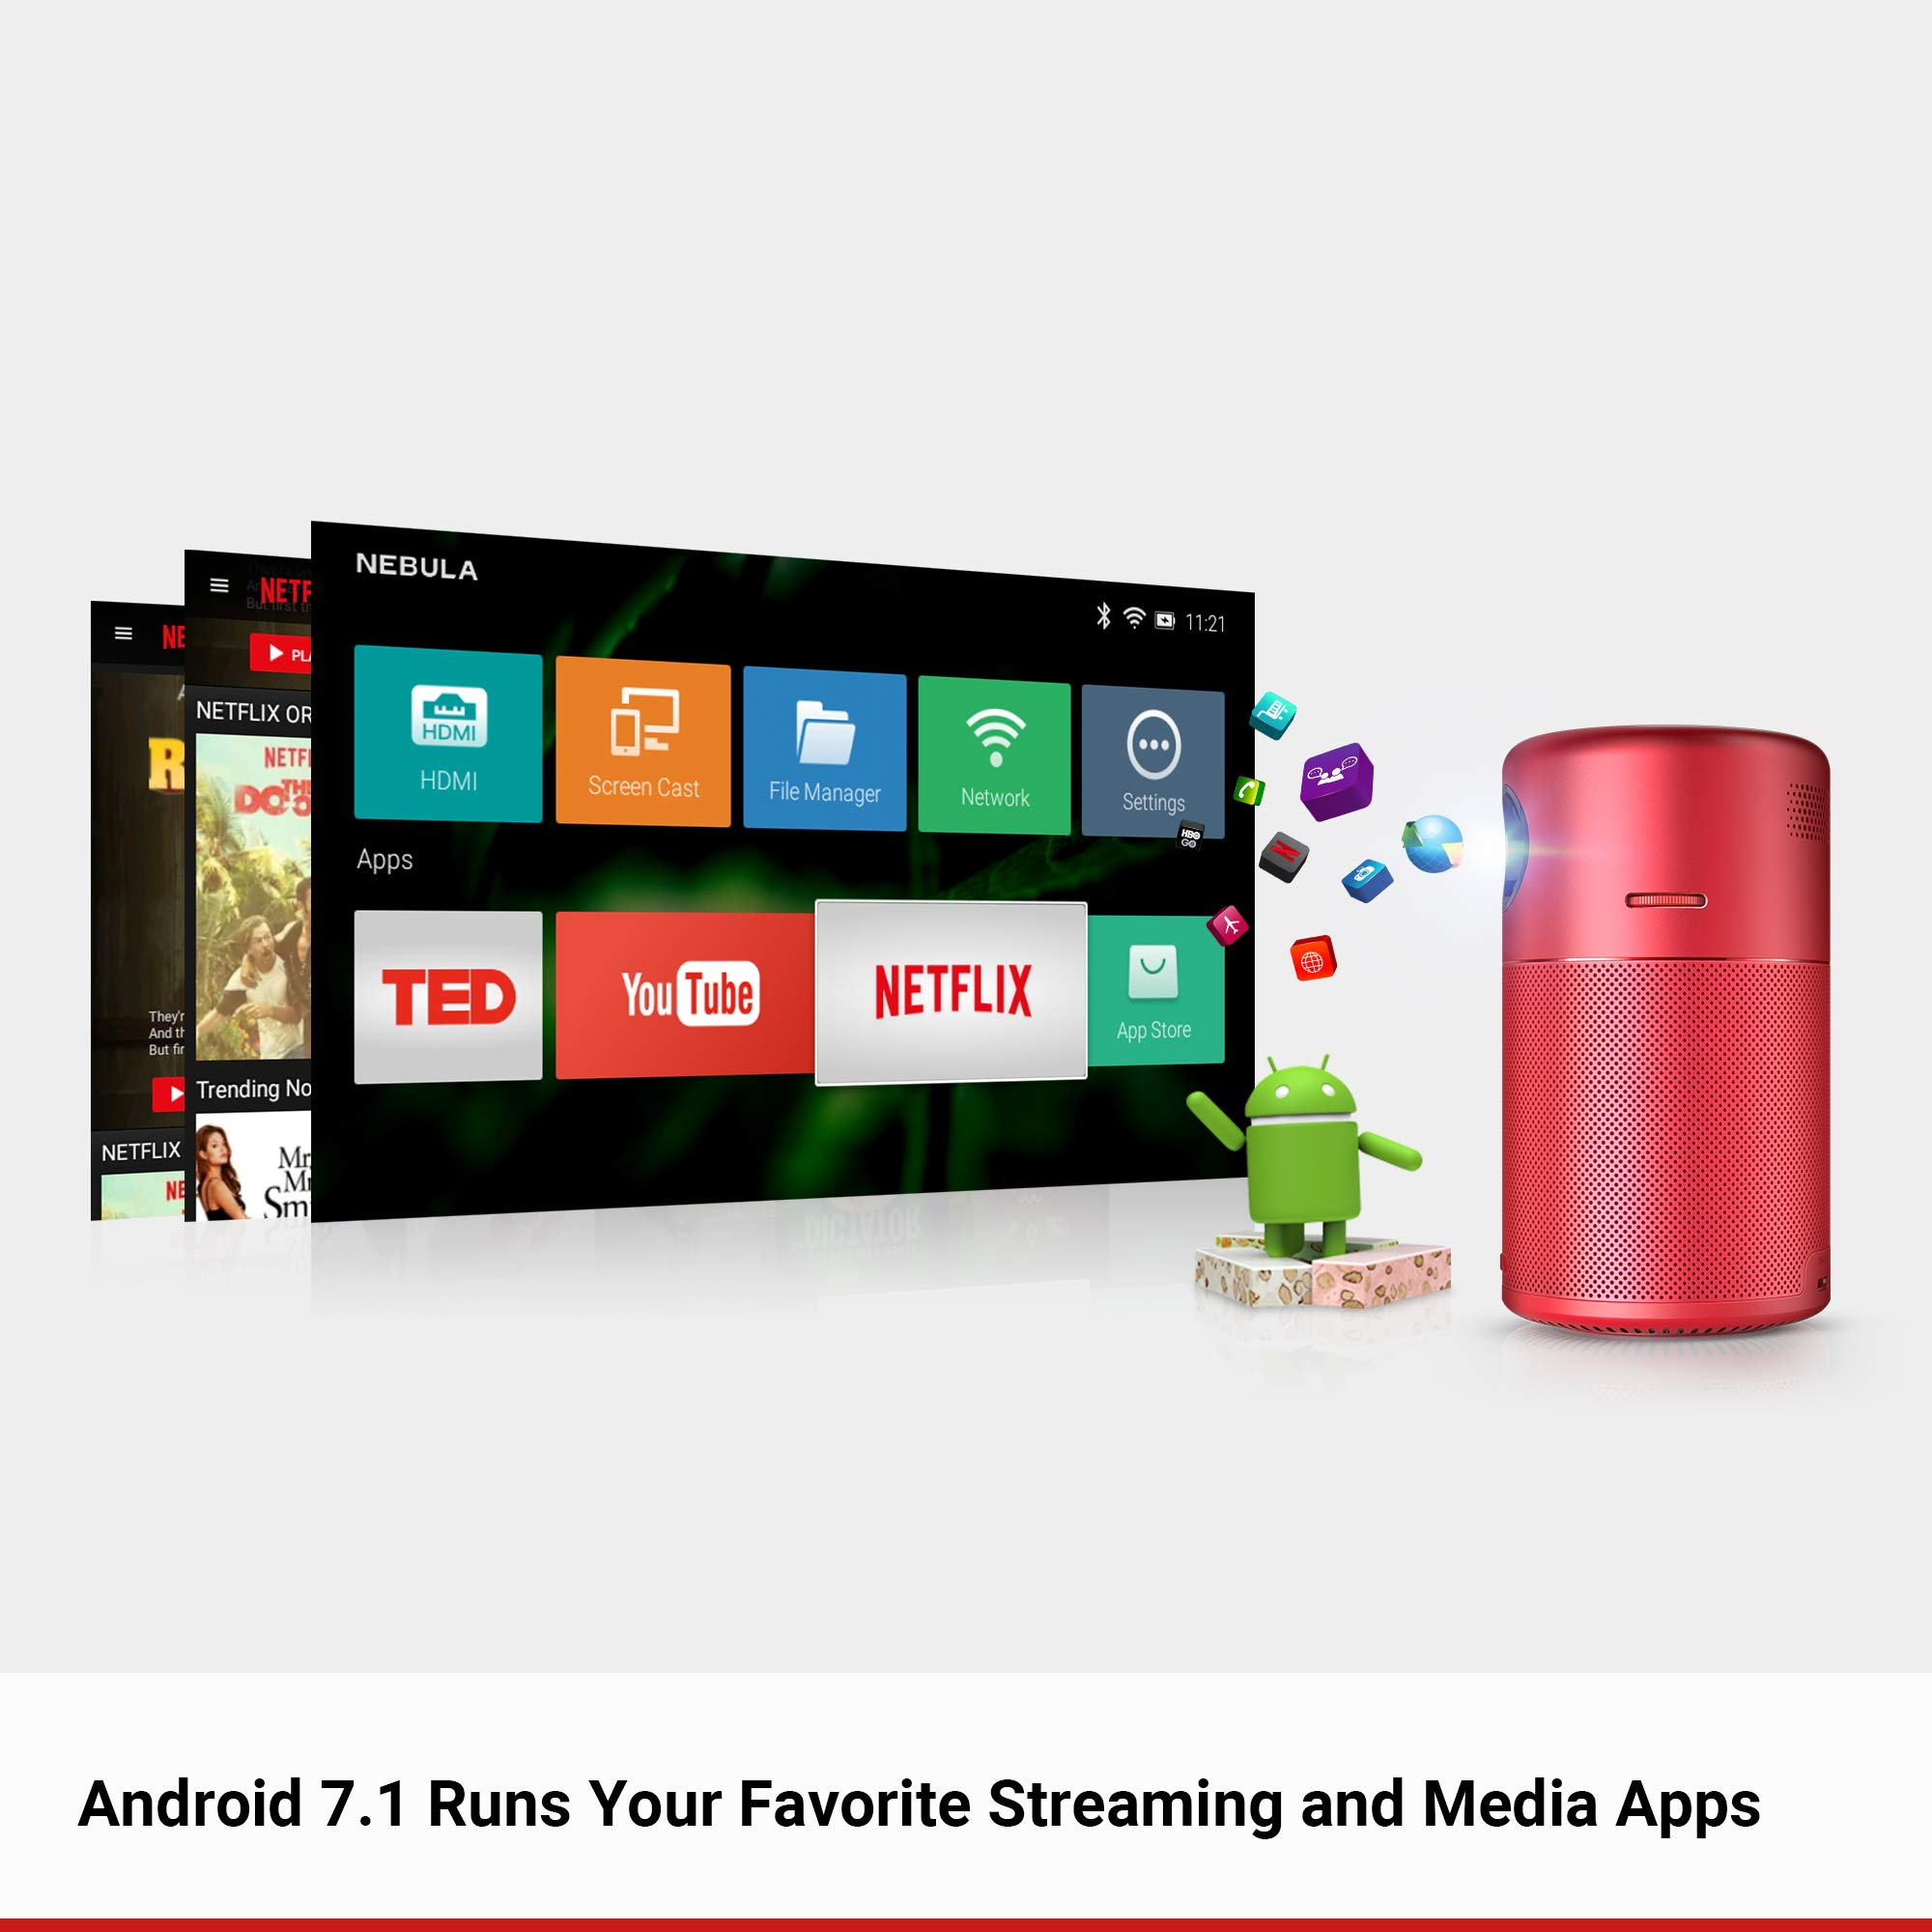 Nebula Capsule Smart Mini Projector, by Anker, Portable 100 ANSI lm High-Contrast Pocket Cinema with Wi-Fi, DLP, 360° Speaker, 100'' Picture, Android 7.1, 4-Hour Video Playtime, and App-Red by Anker (Image #4)